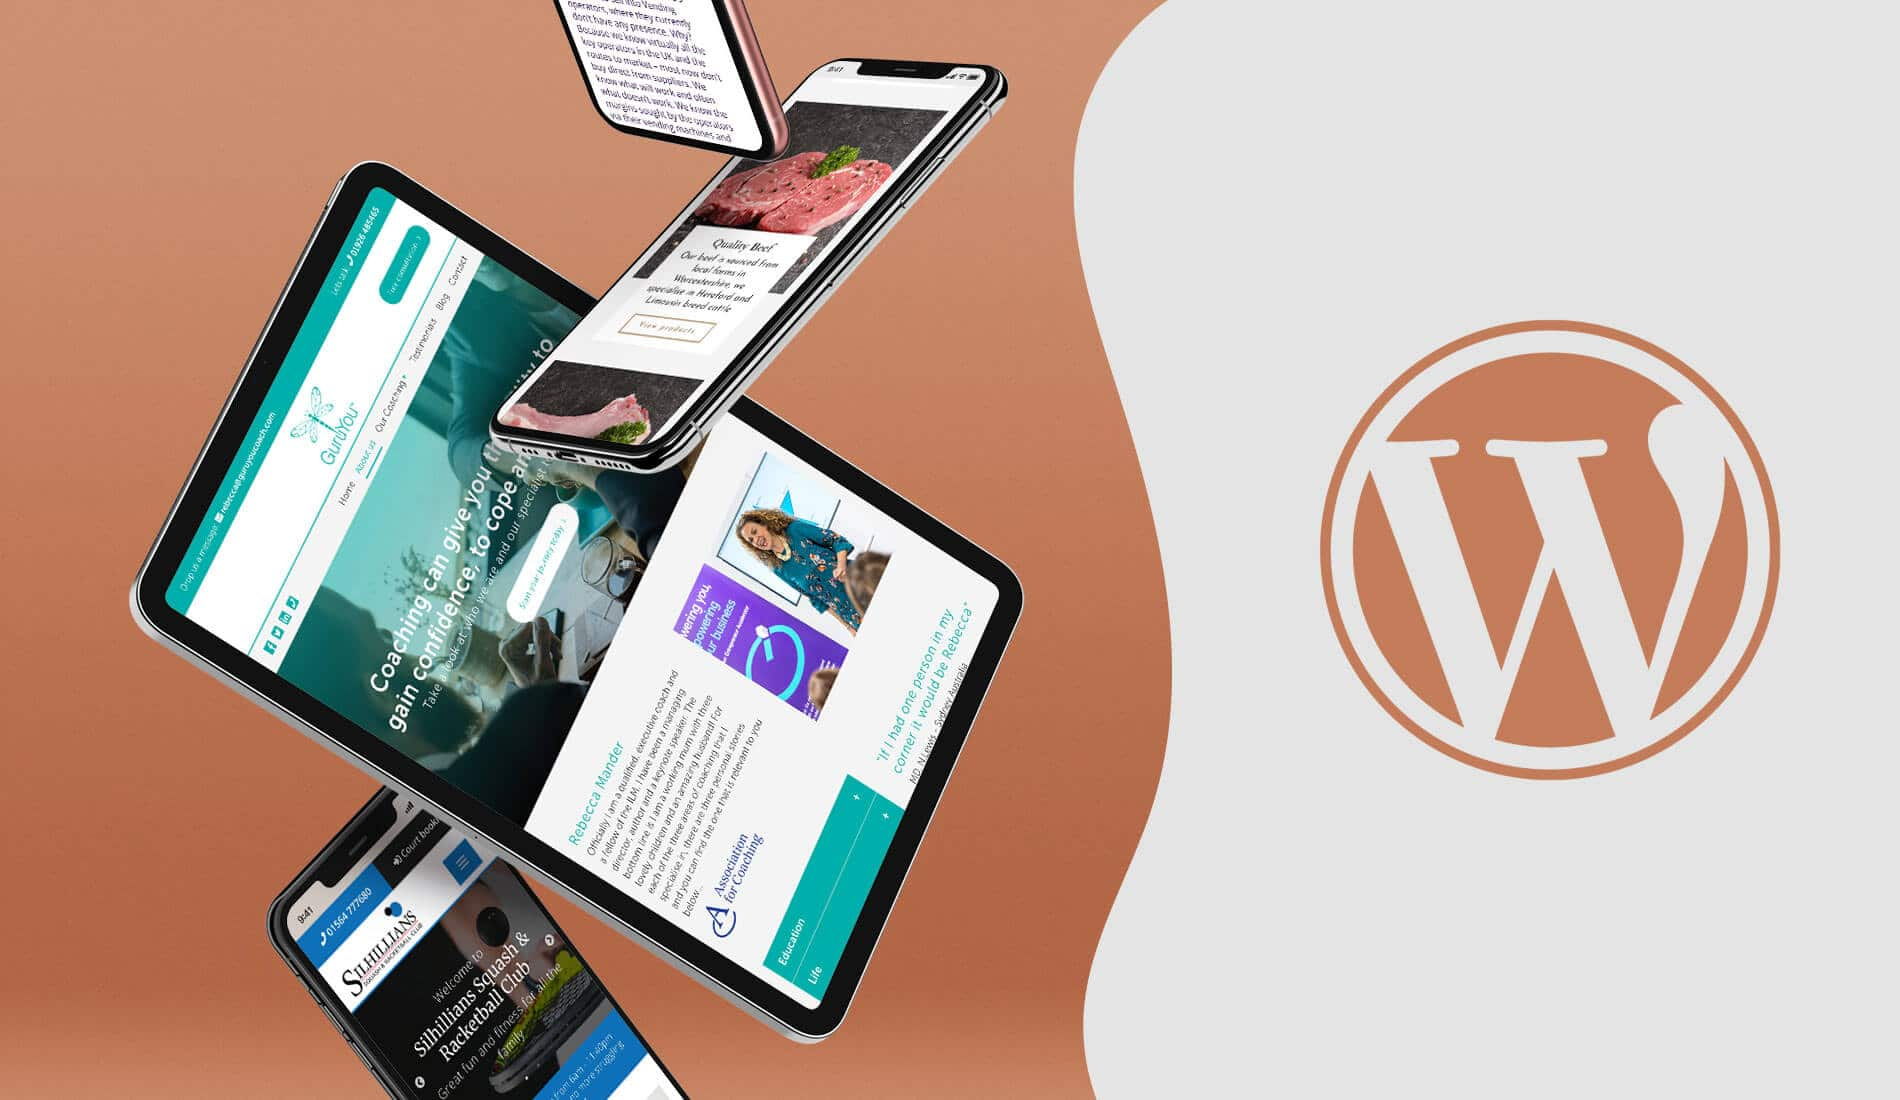 Wordpress for my business, websites mocked up on iphone and ipad